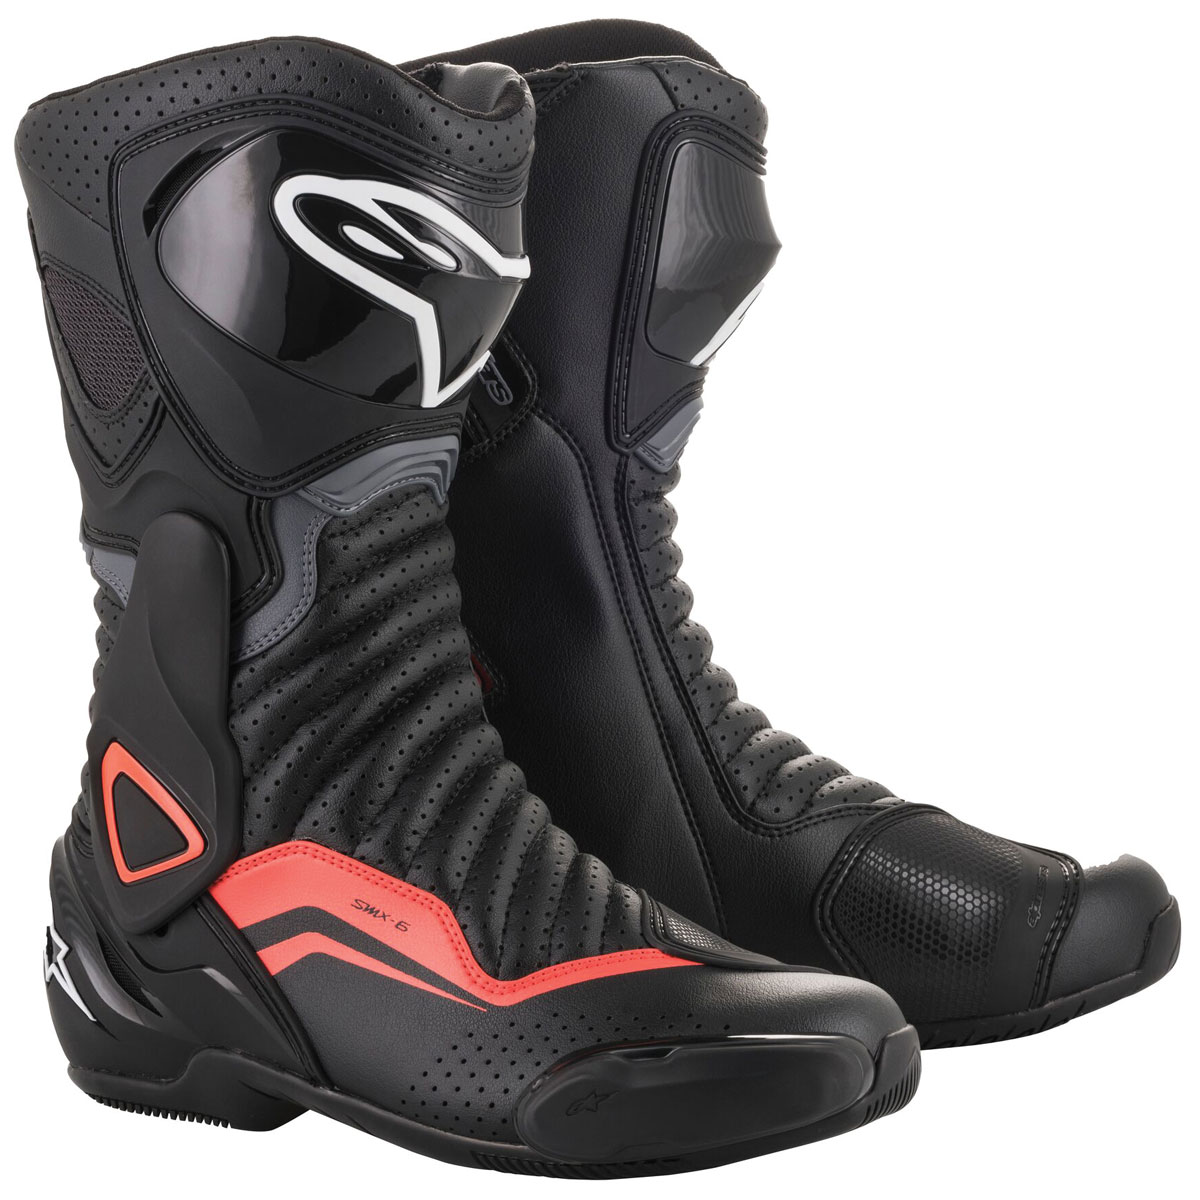 Alpinestars Men's SMX-6 v2 Vented Black/Gray/Red Fluo Boots